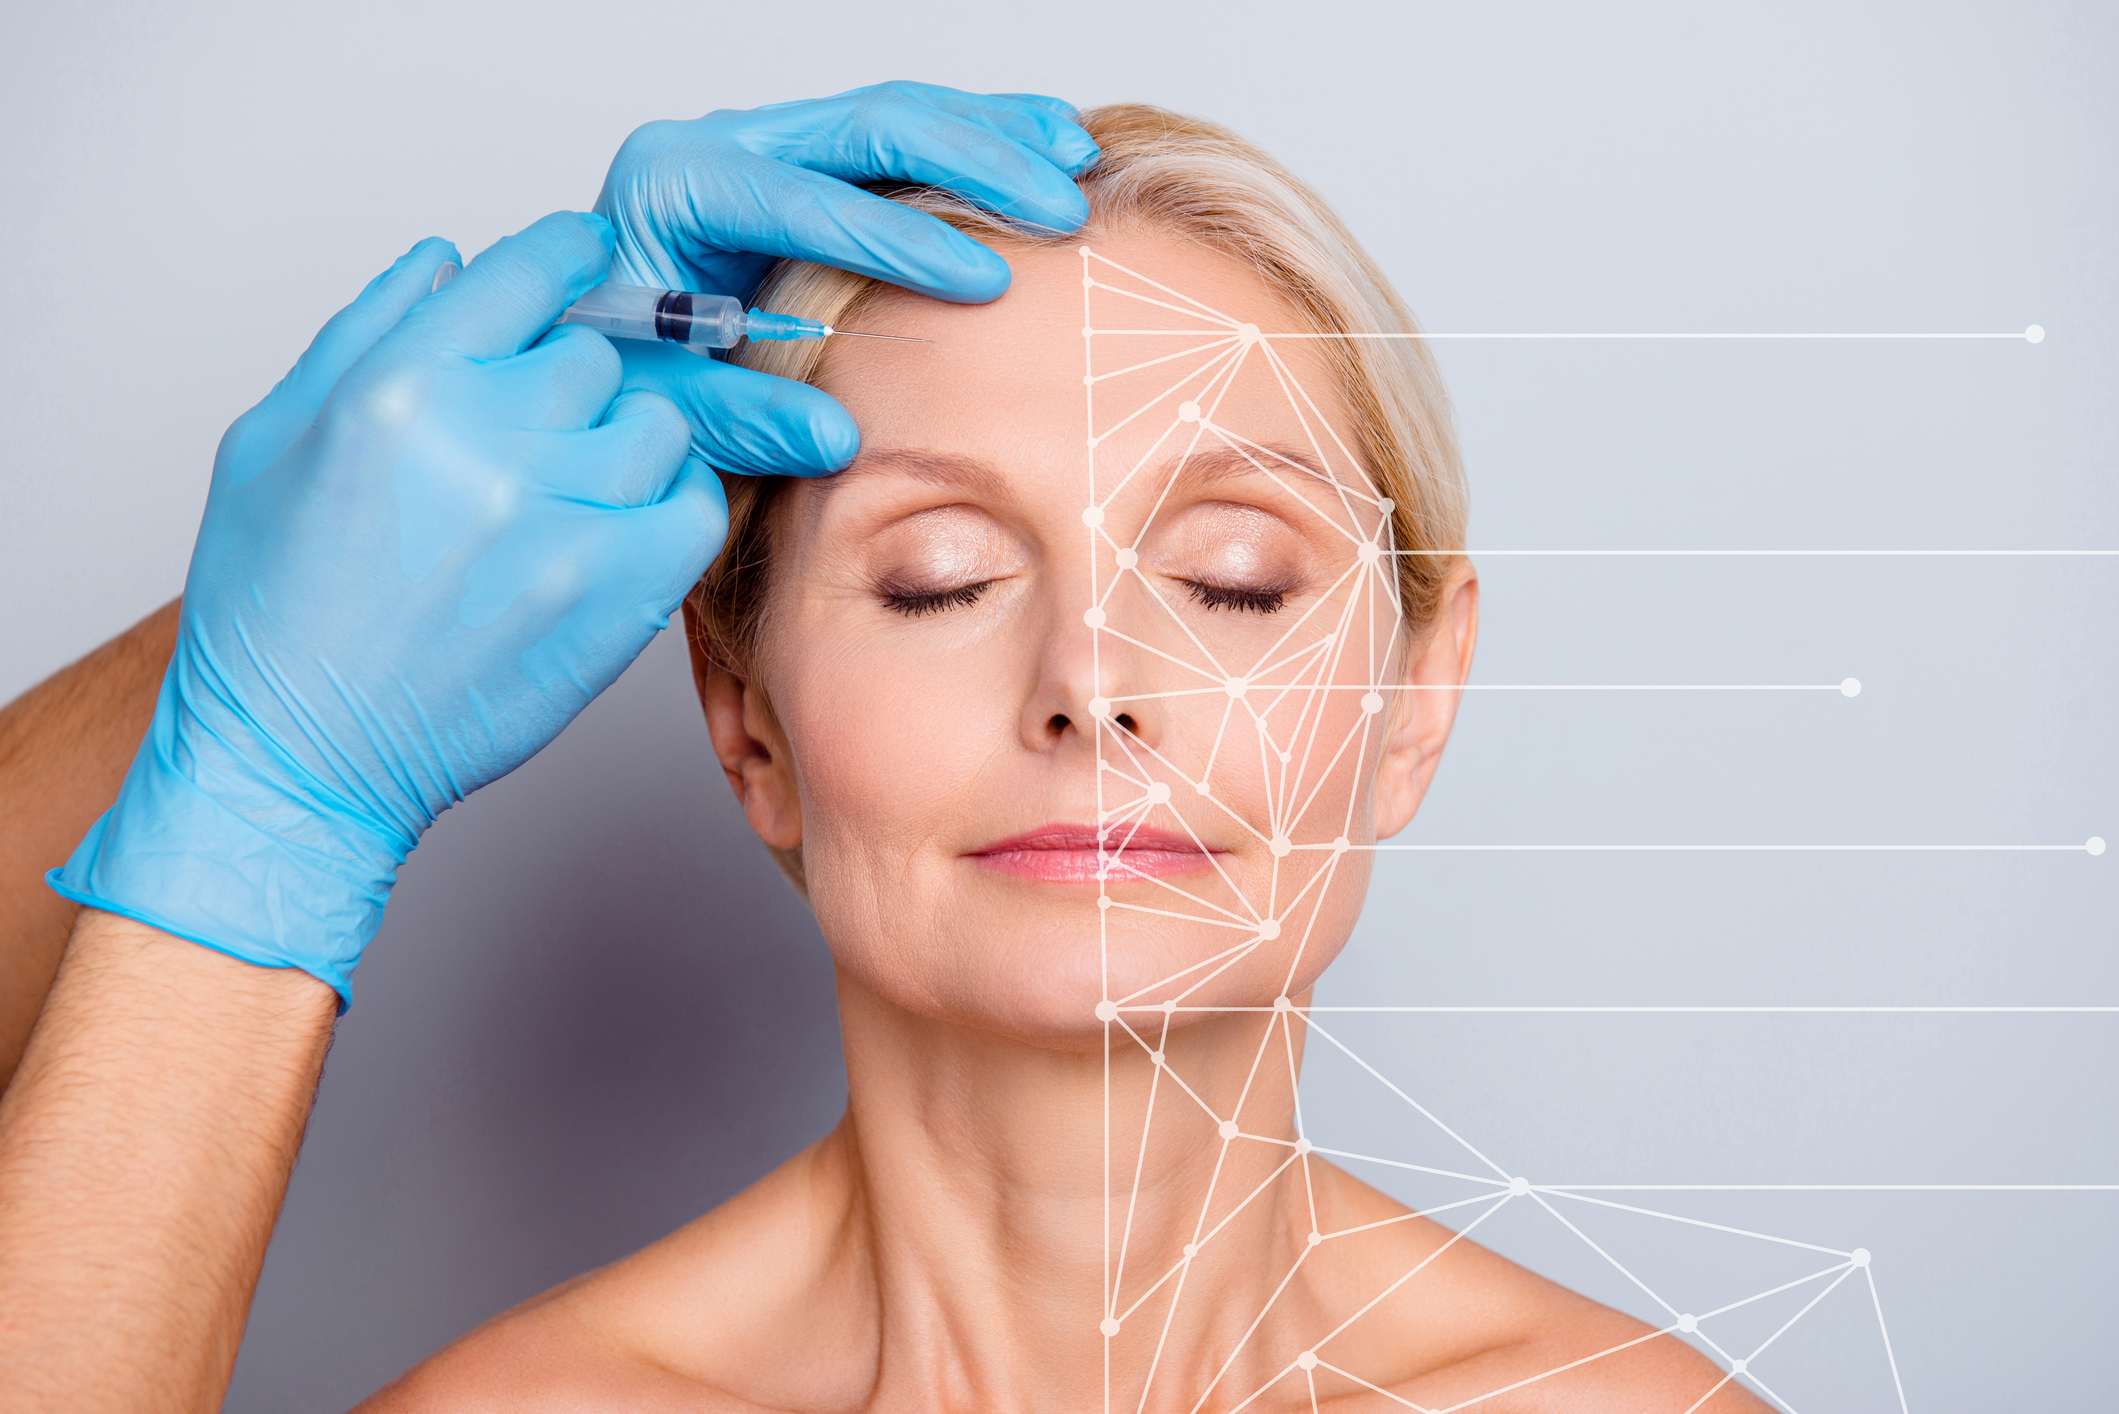 Mature woman receiving Botox injection